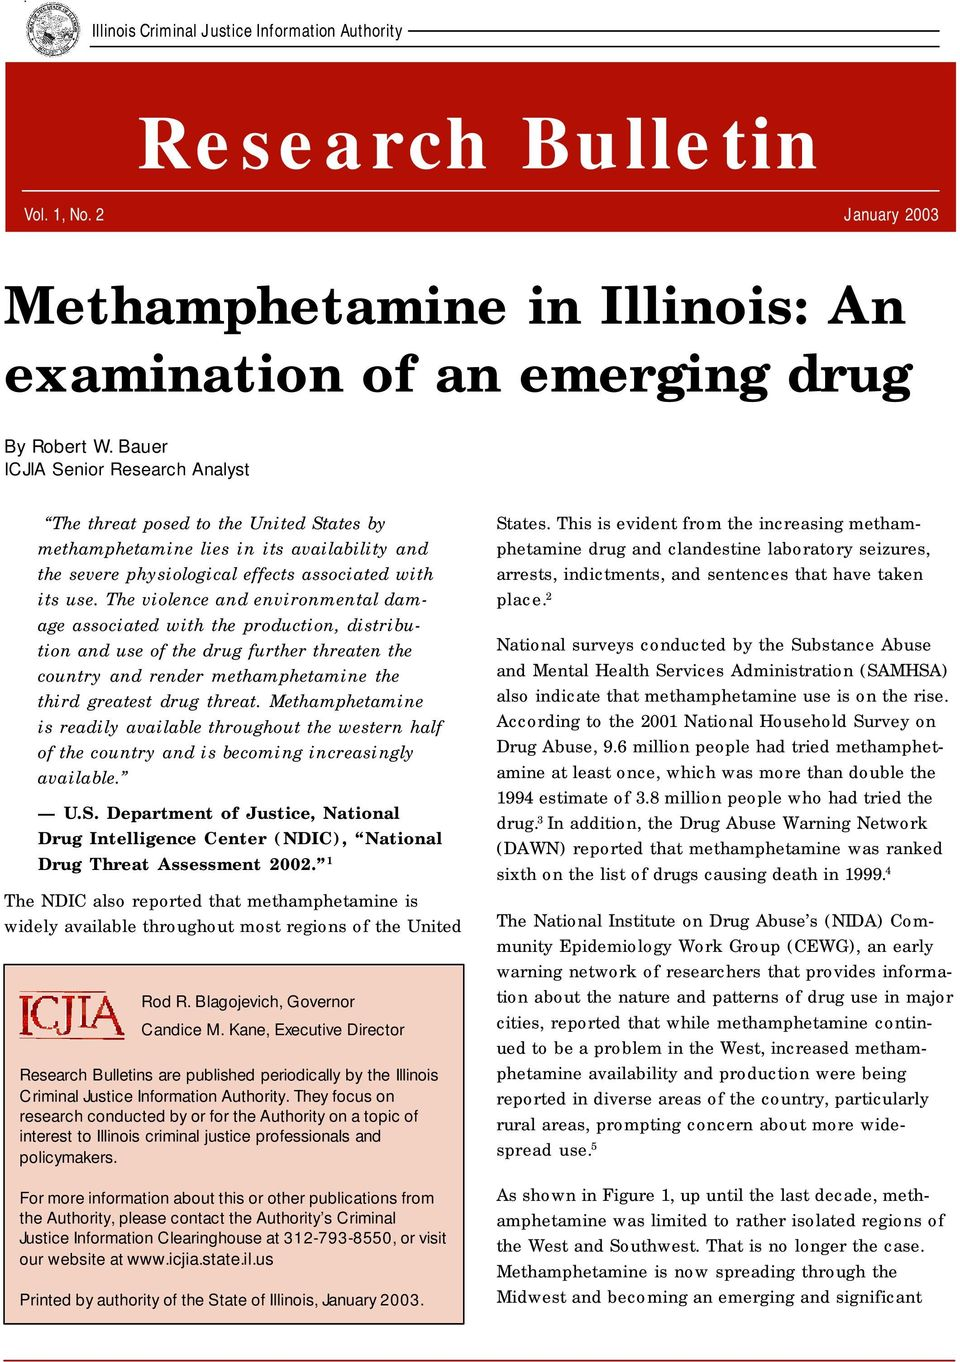 The violence and environmental damage associated with the production, distribution and use of the drug further threaten the country and render methamphetamine the third greatest drug threat.